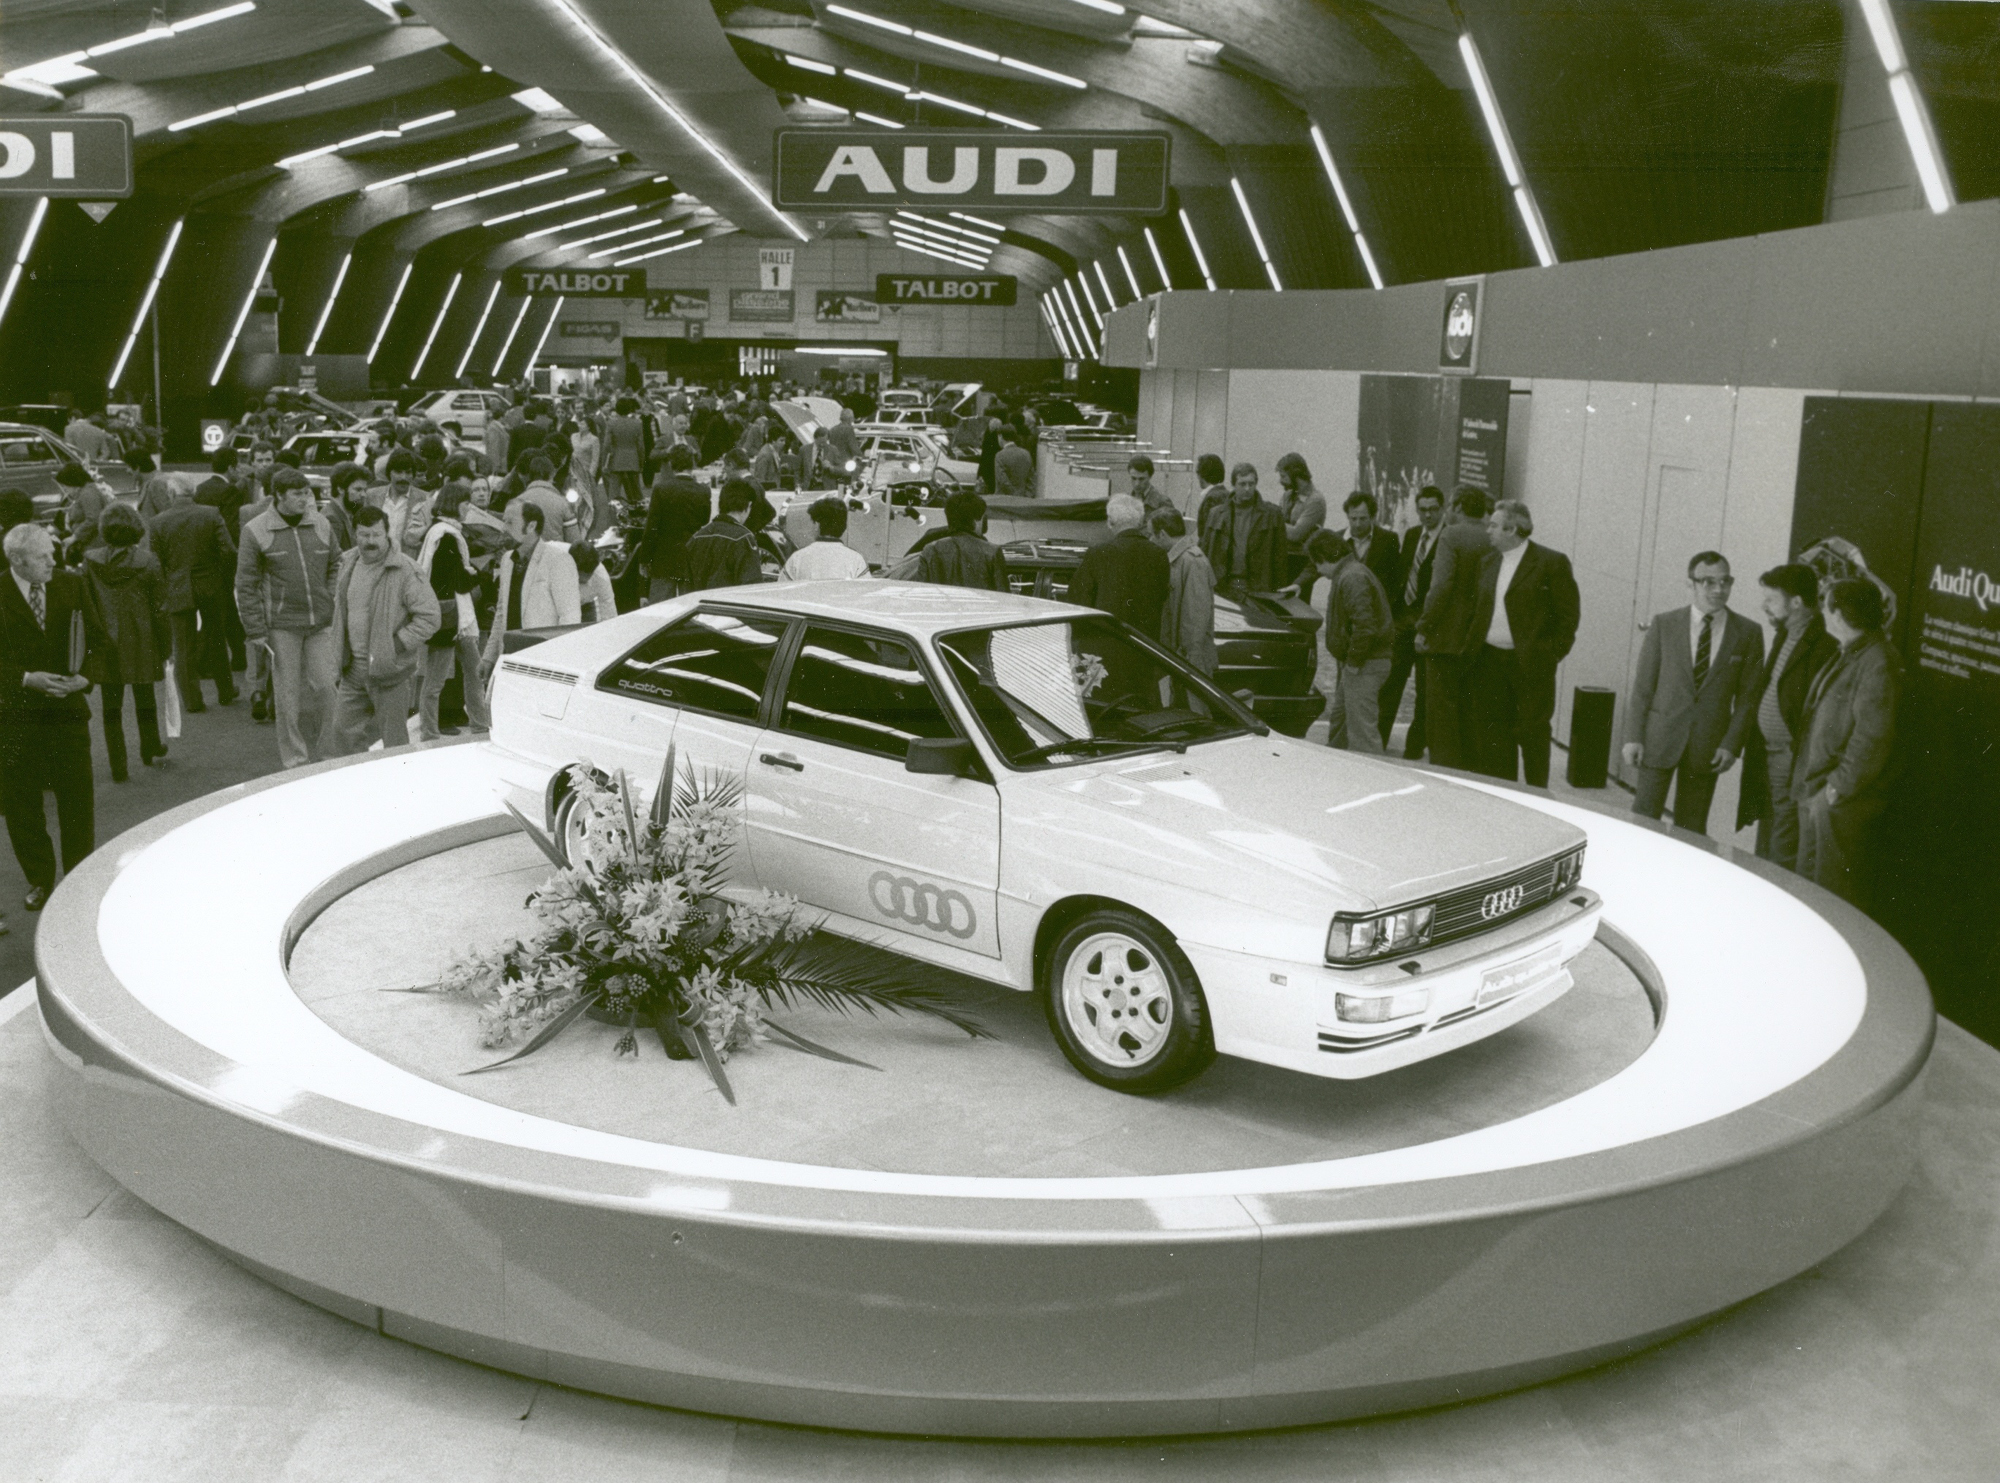 The first four-wheel-drive Audi Quattro in 1980